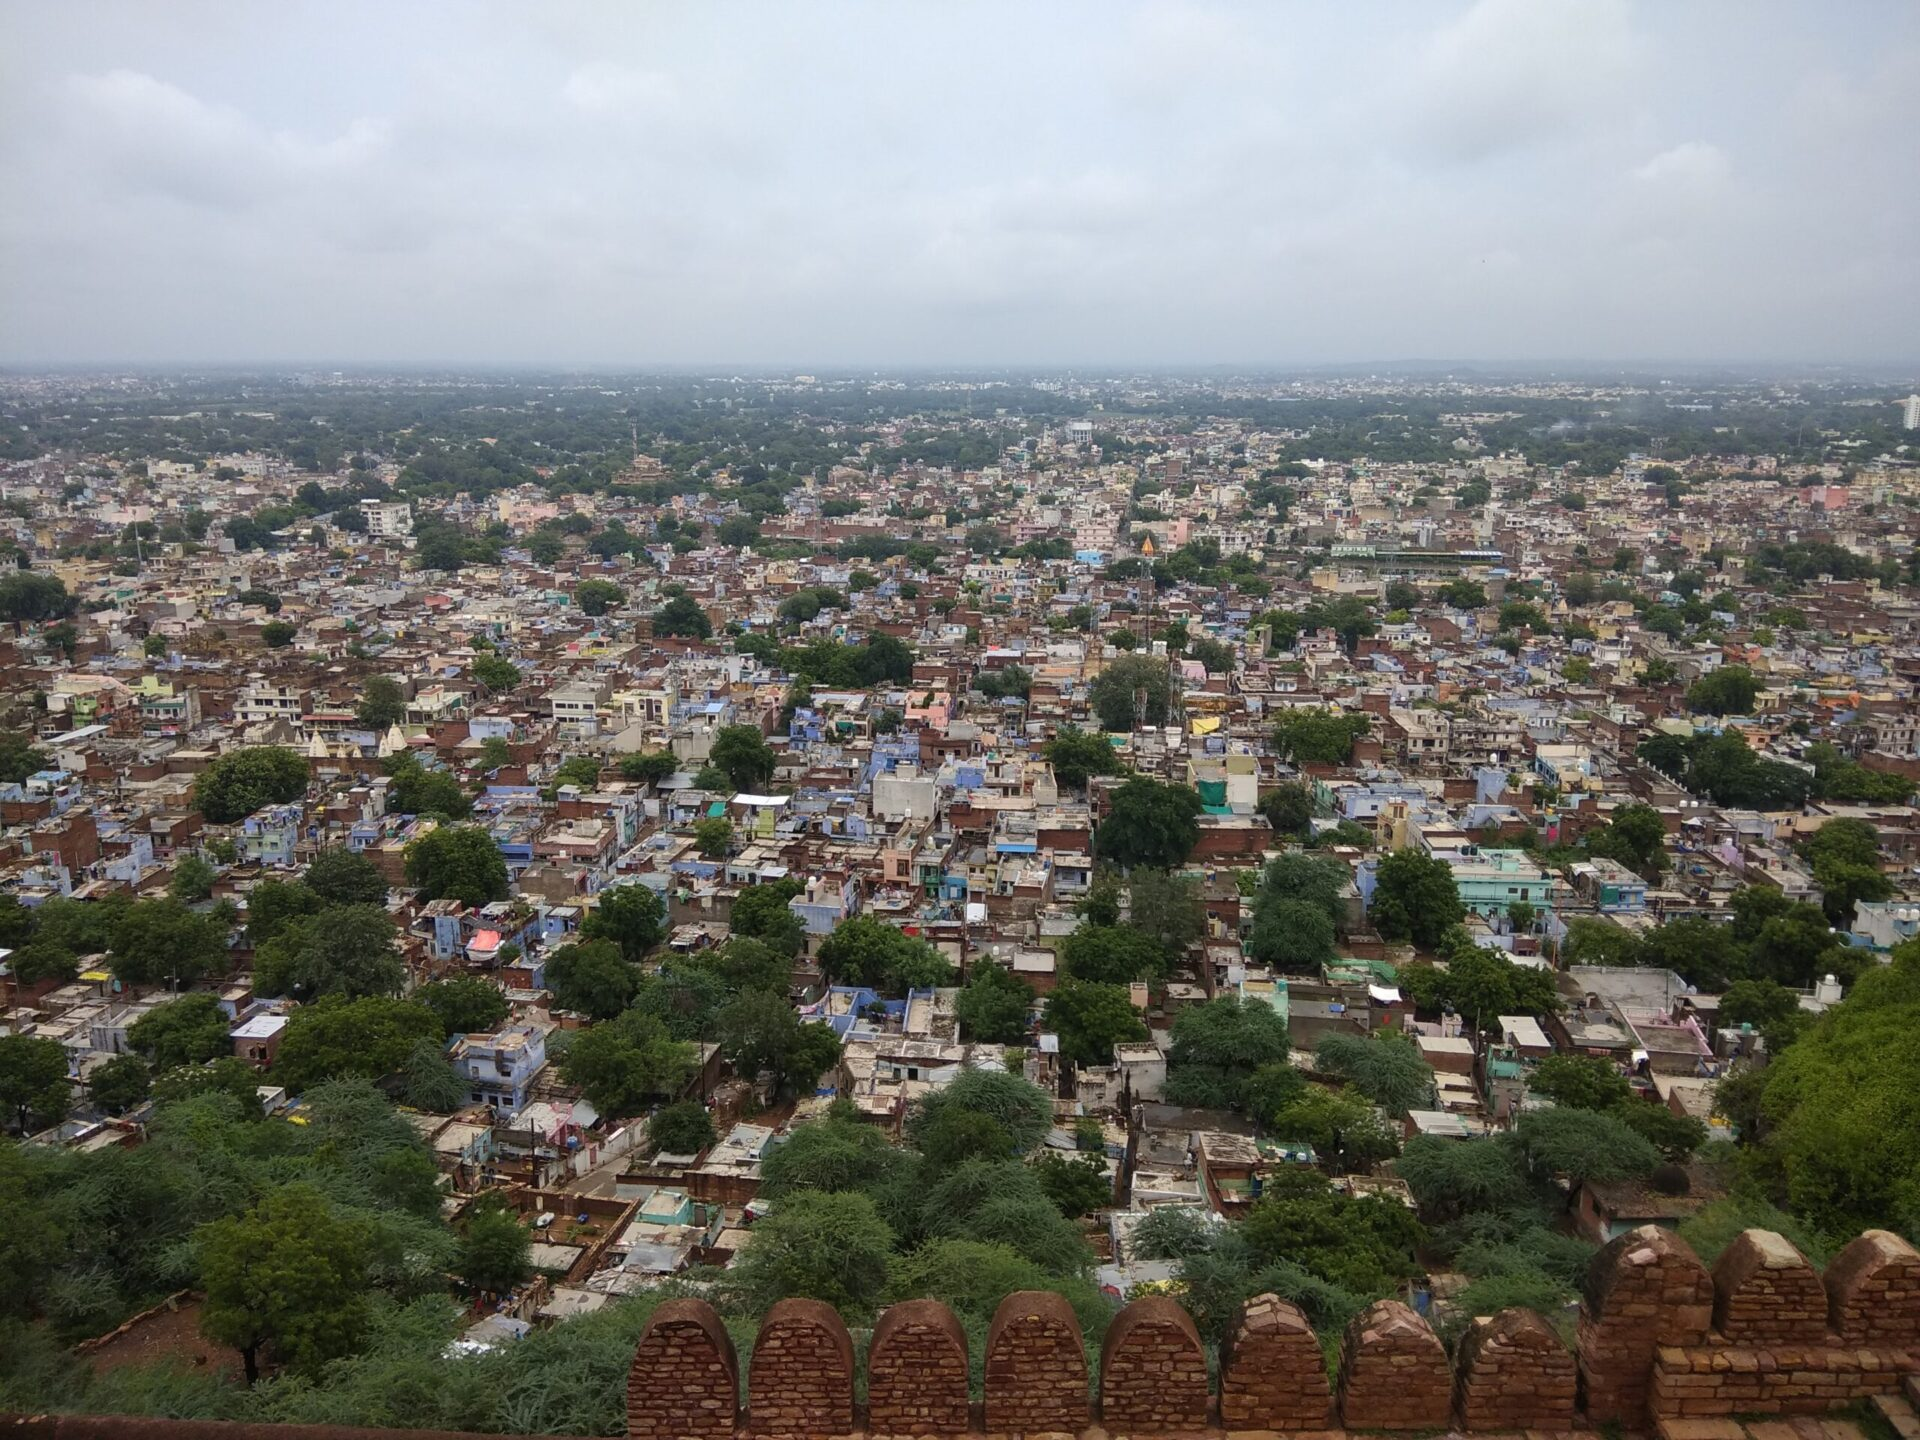 Gwalior City View From the Top of the Gwalior Fort